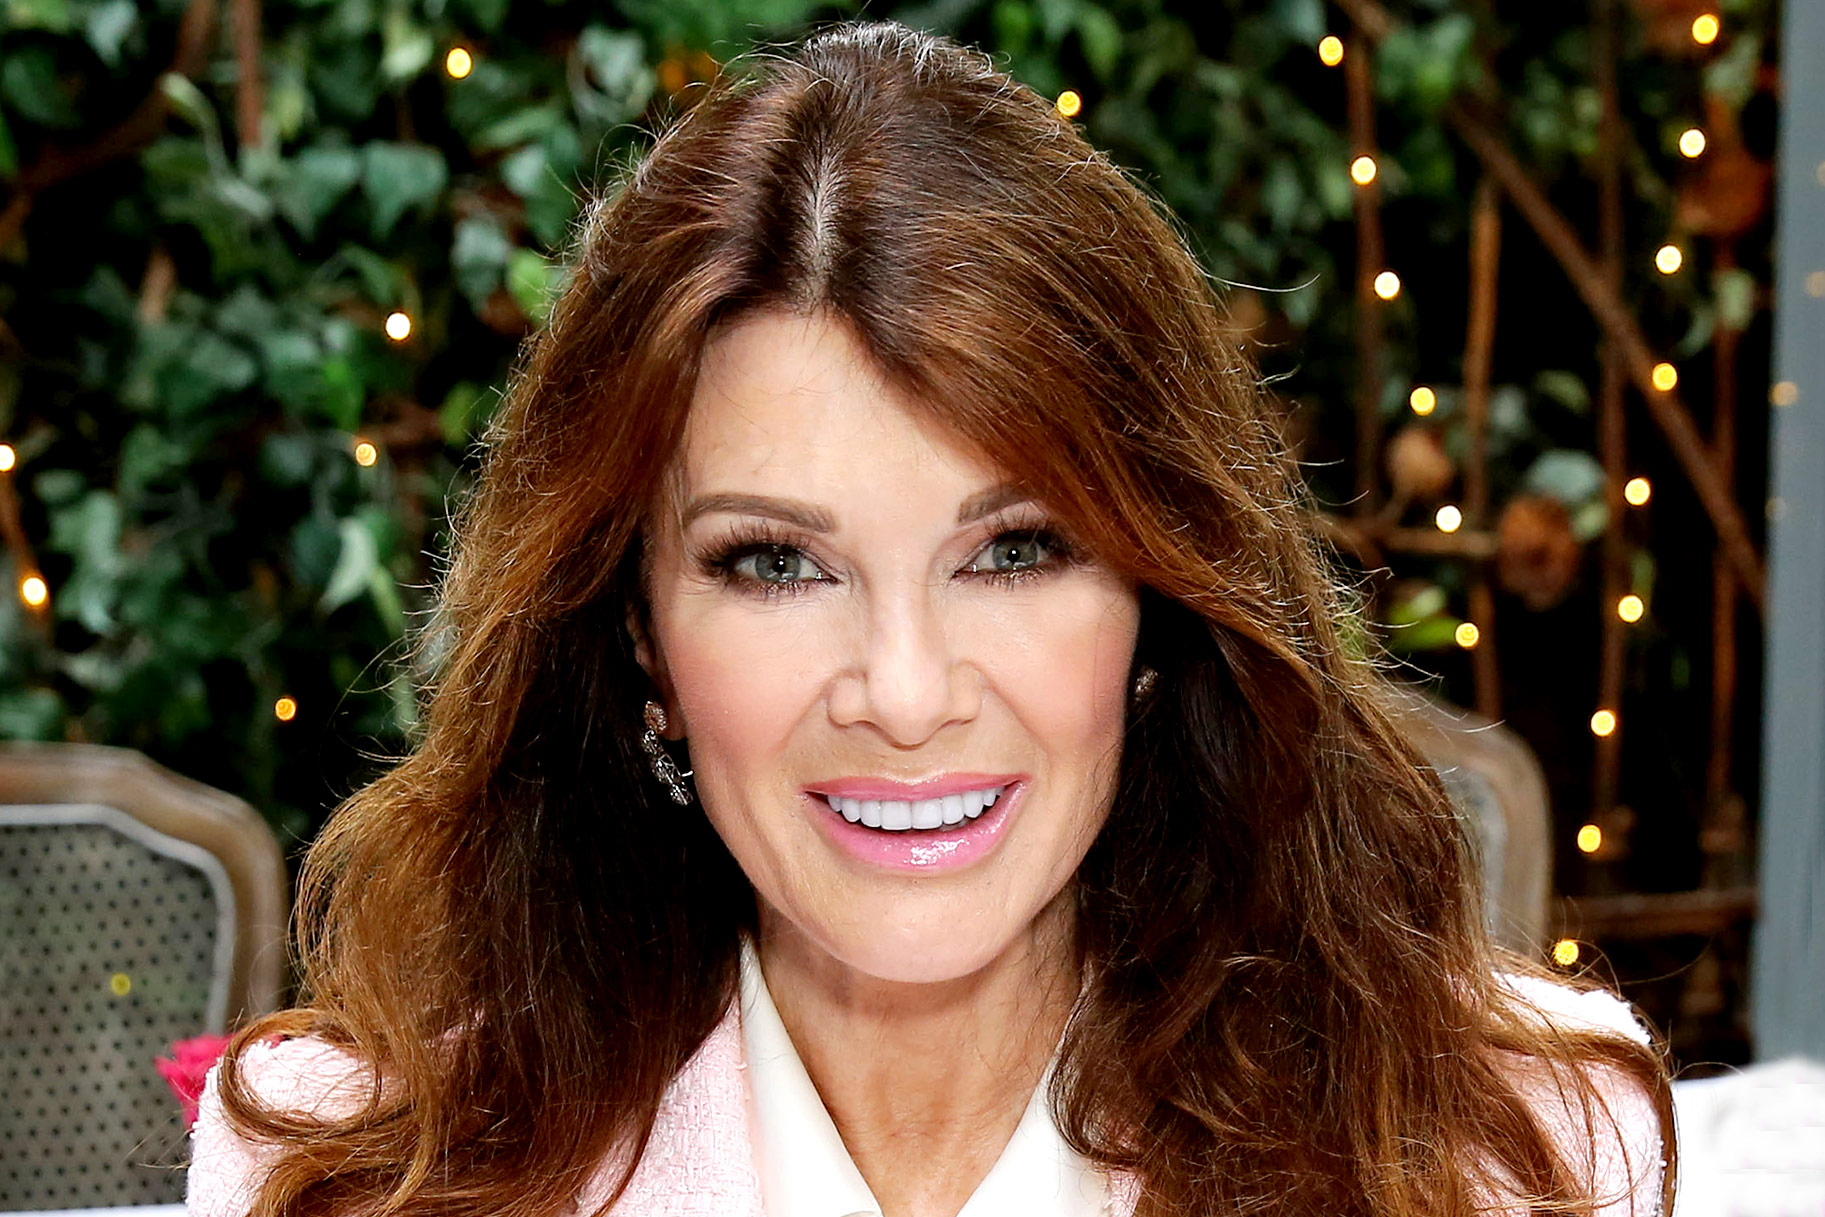 """lisa-vanderpump-might-change-her-mind-about-her-permanent-real-housewives-exit-heres-why"""